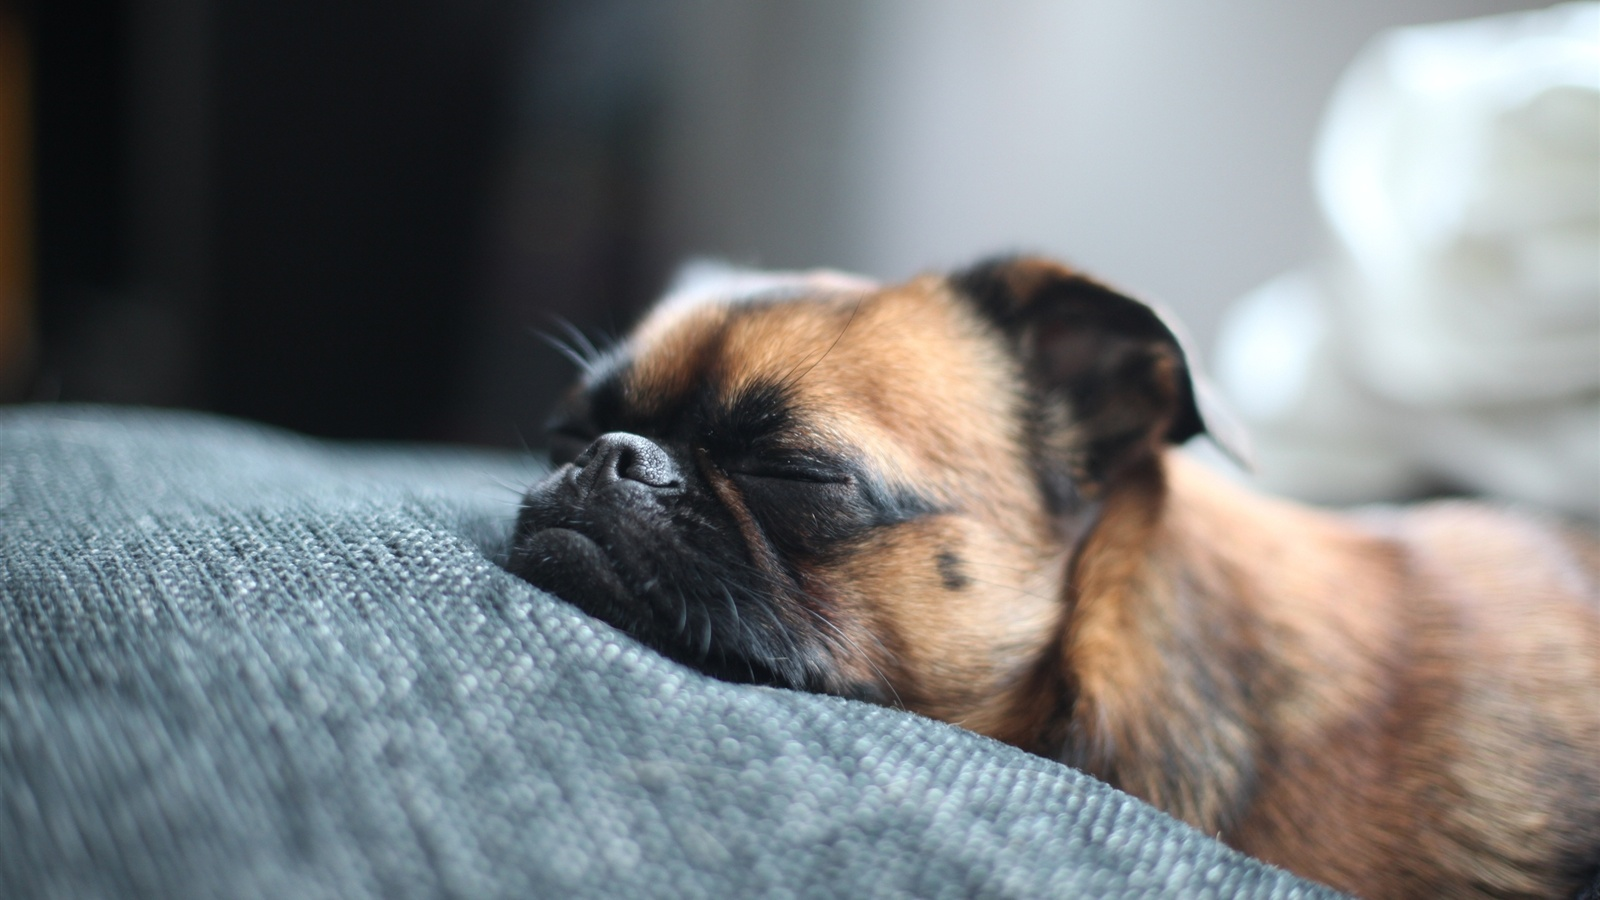 Wallpaper Sleeping Dog 2560x1600 Hd Picture Image